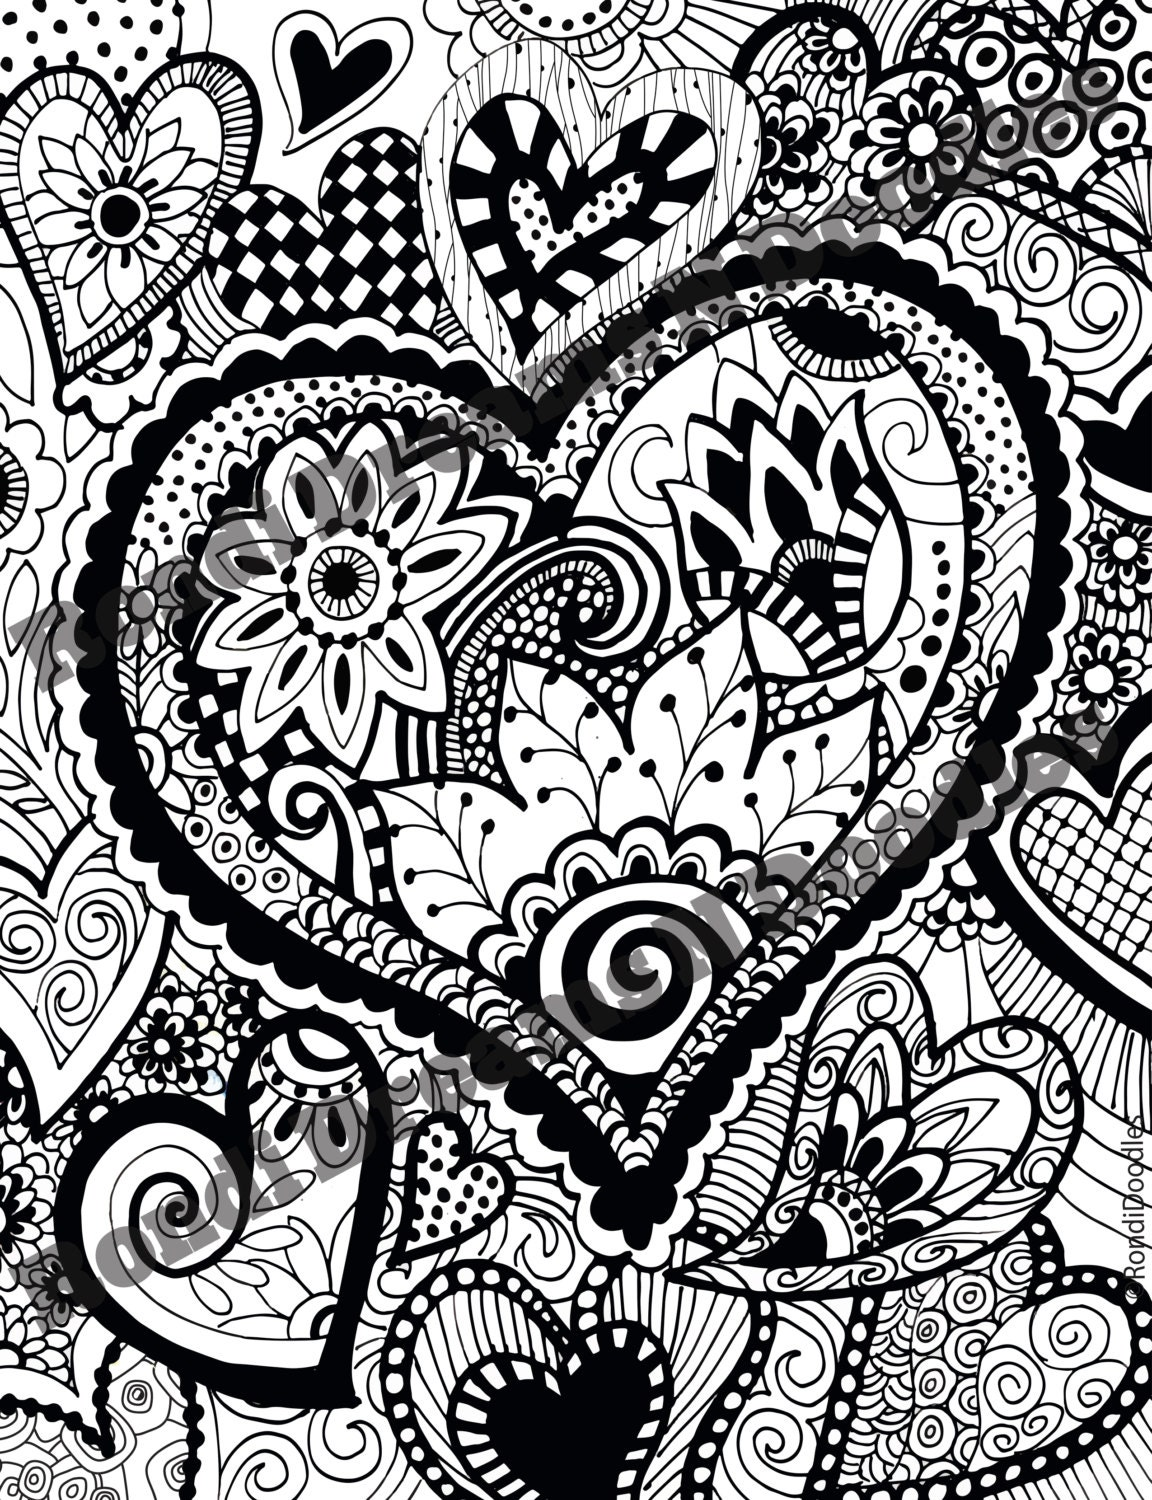 Heart work zendoodle coloring page for Zendoodle coloring pages